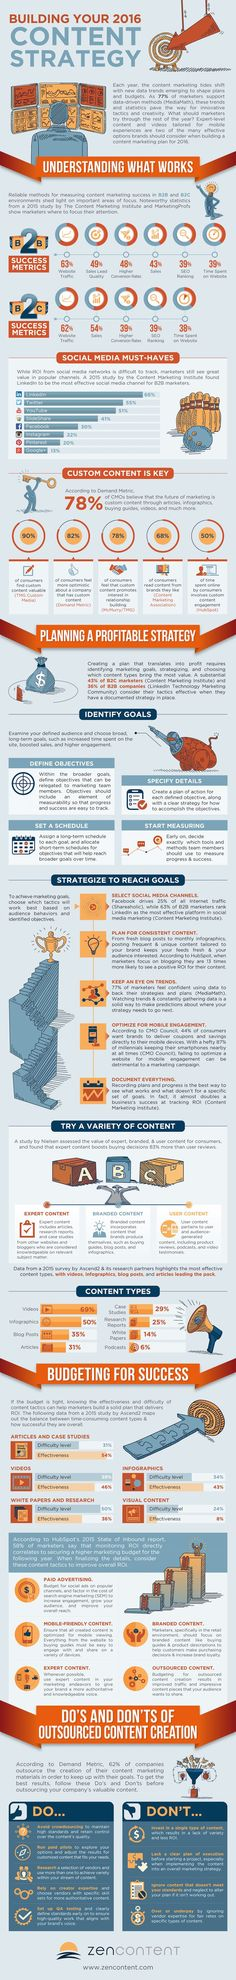 Building Your 2016 Content Strategy [Infographic] - Content Marketing | Social…